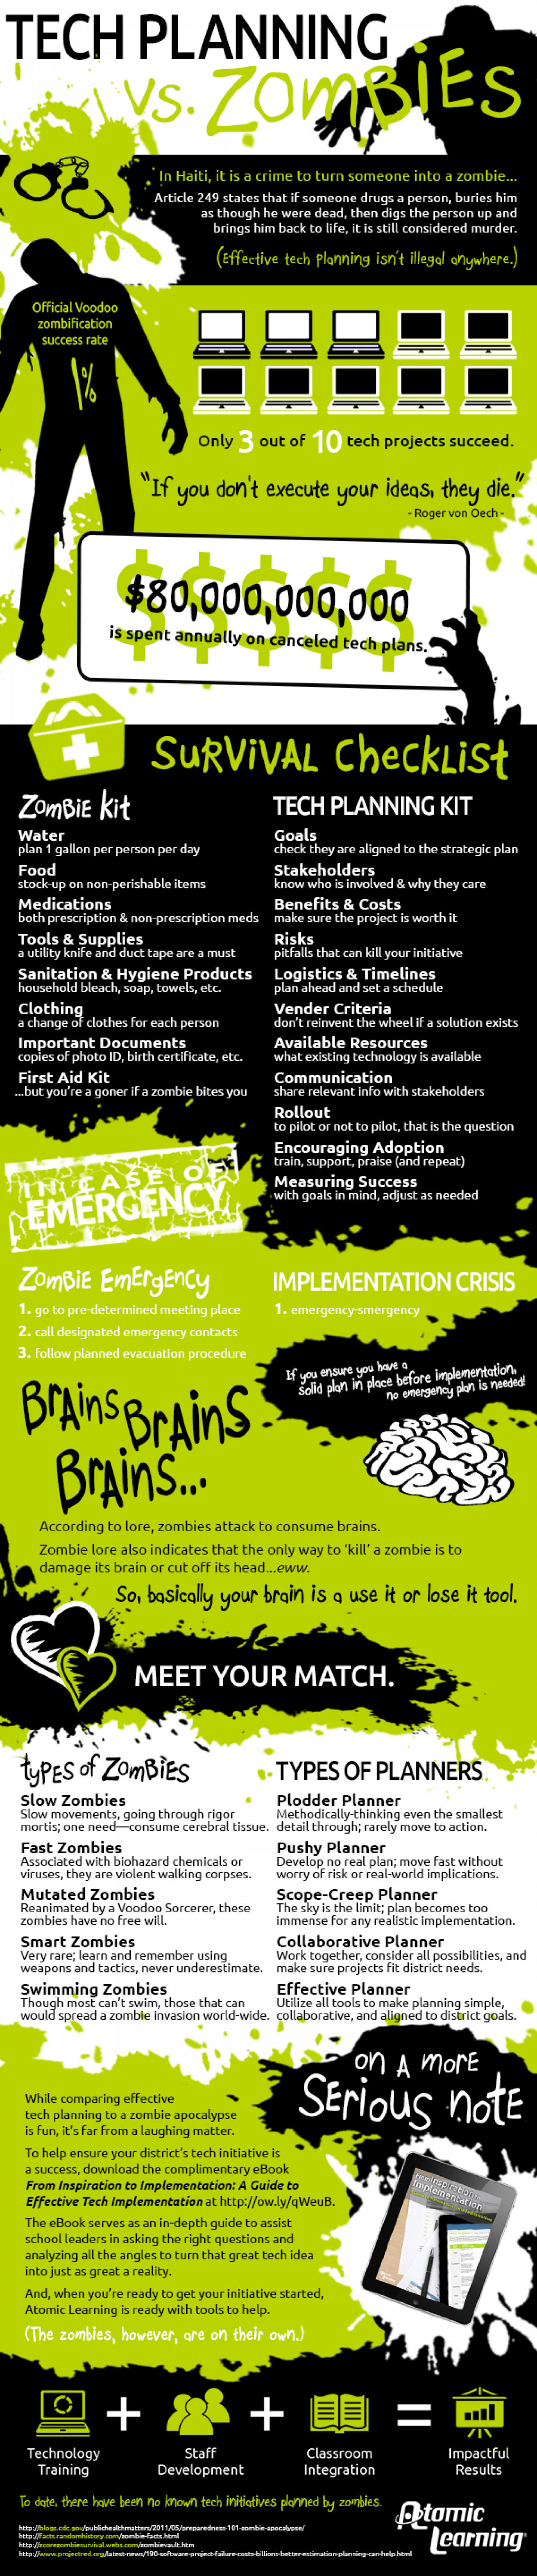 Tech Planning Vs. Zombies Infographic